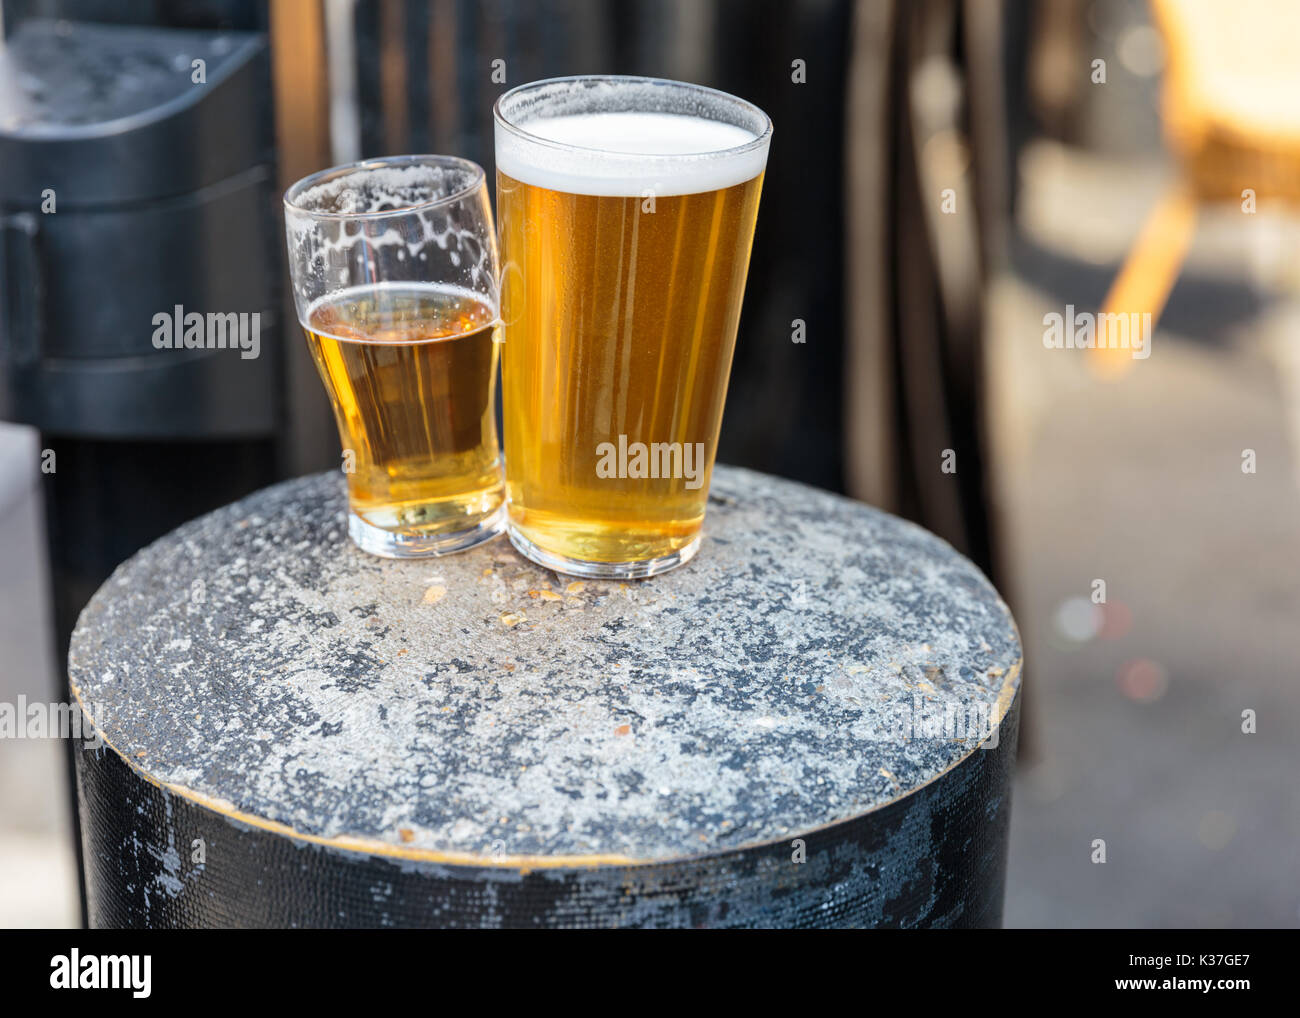 British pint and half pint of beer resting on a concrete stool, UK - Stock Image